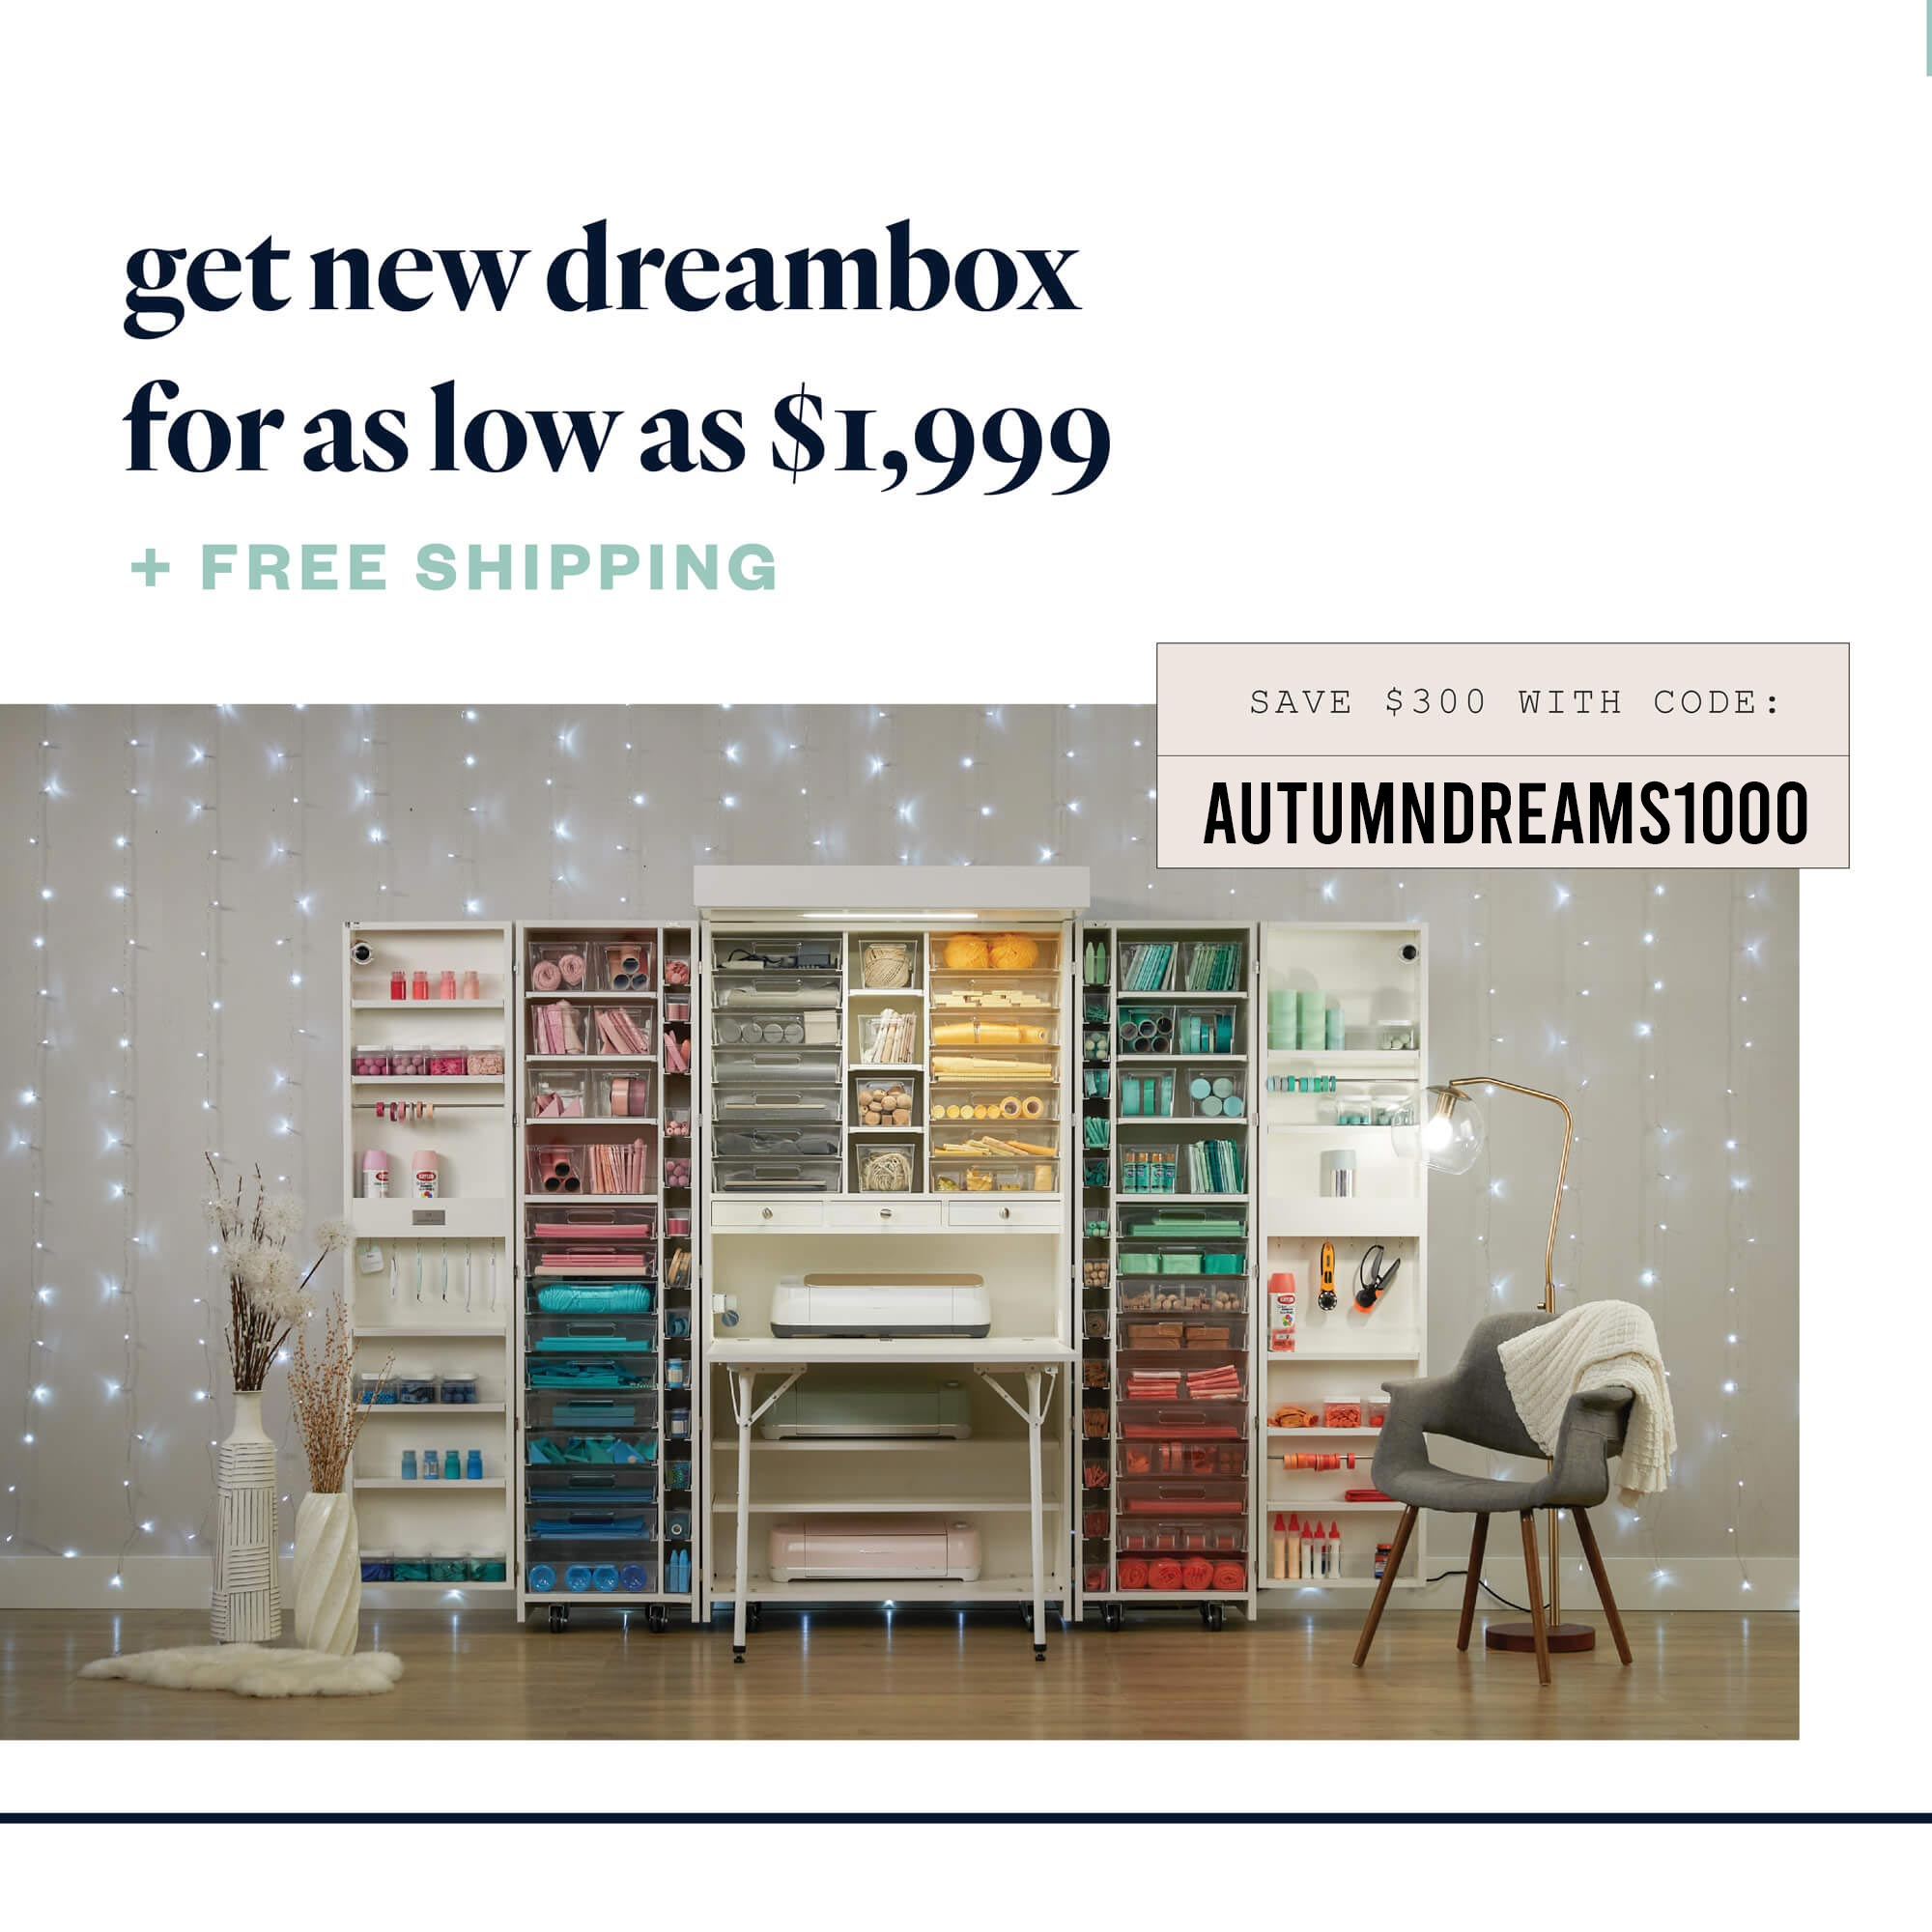 DreamBox sale and coupon code: AUTUMNDREAMS1000